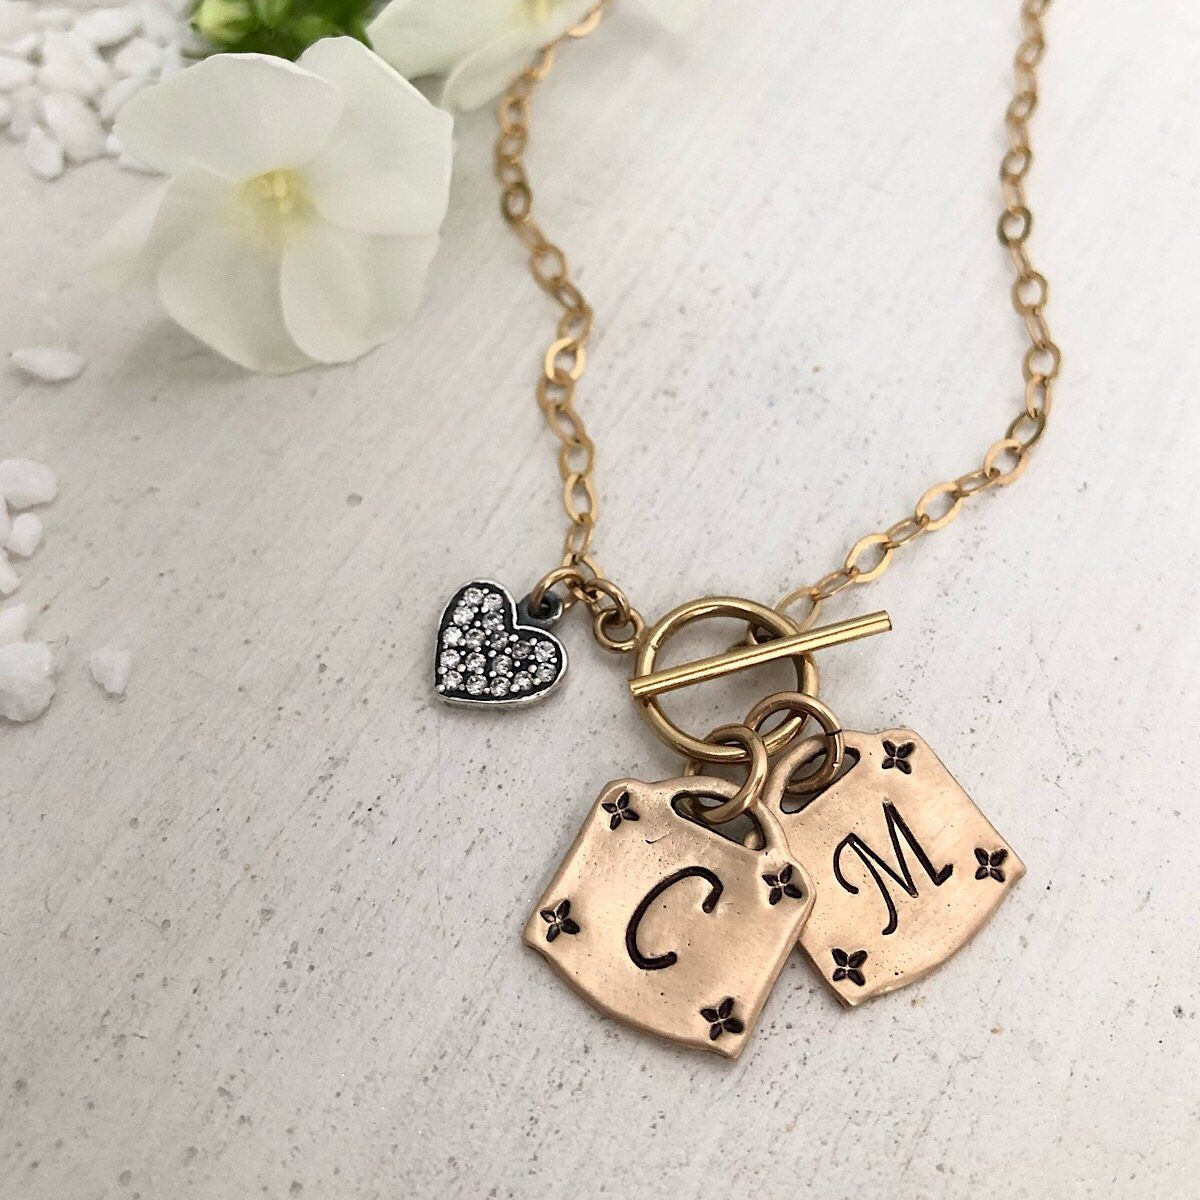 Lock Toggle Initial Necklace - IsabelleGraceJewelry